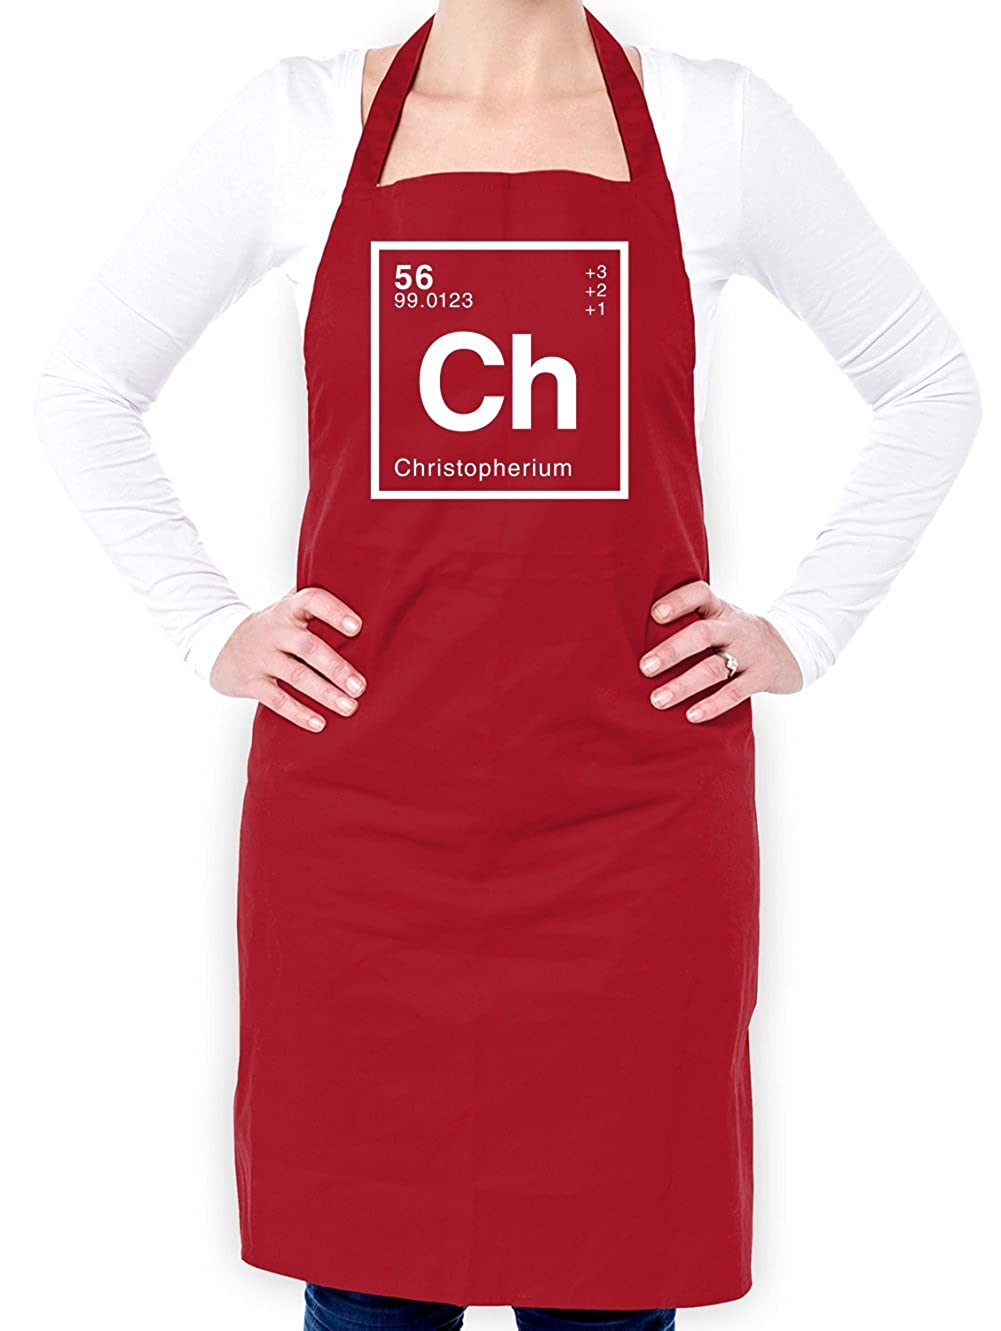 CHRISTOPHER - Periodic Element - Unisex Fit Apron - Red - One Size